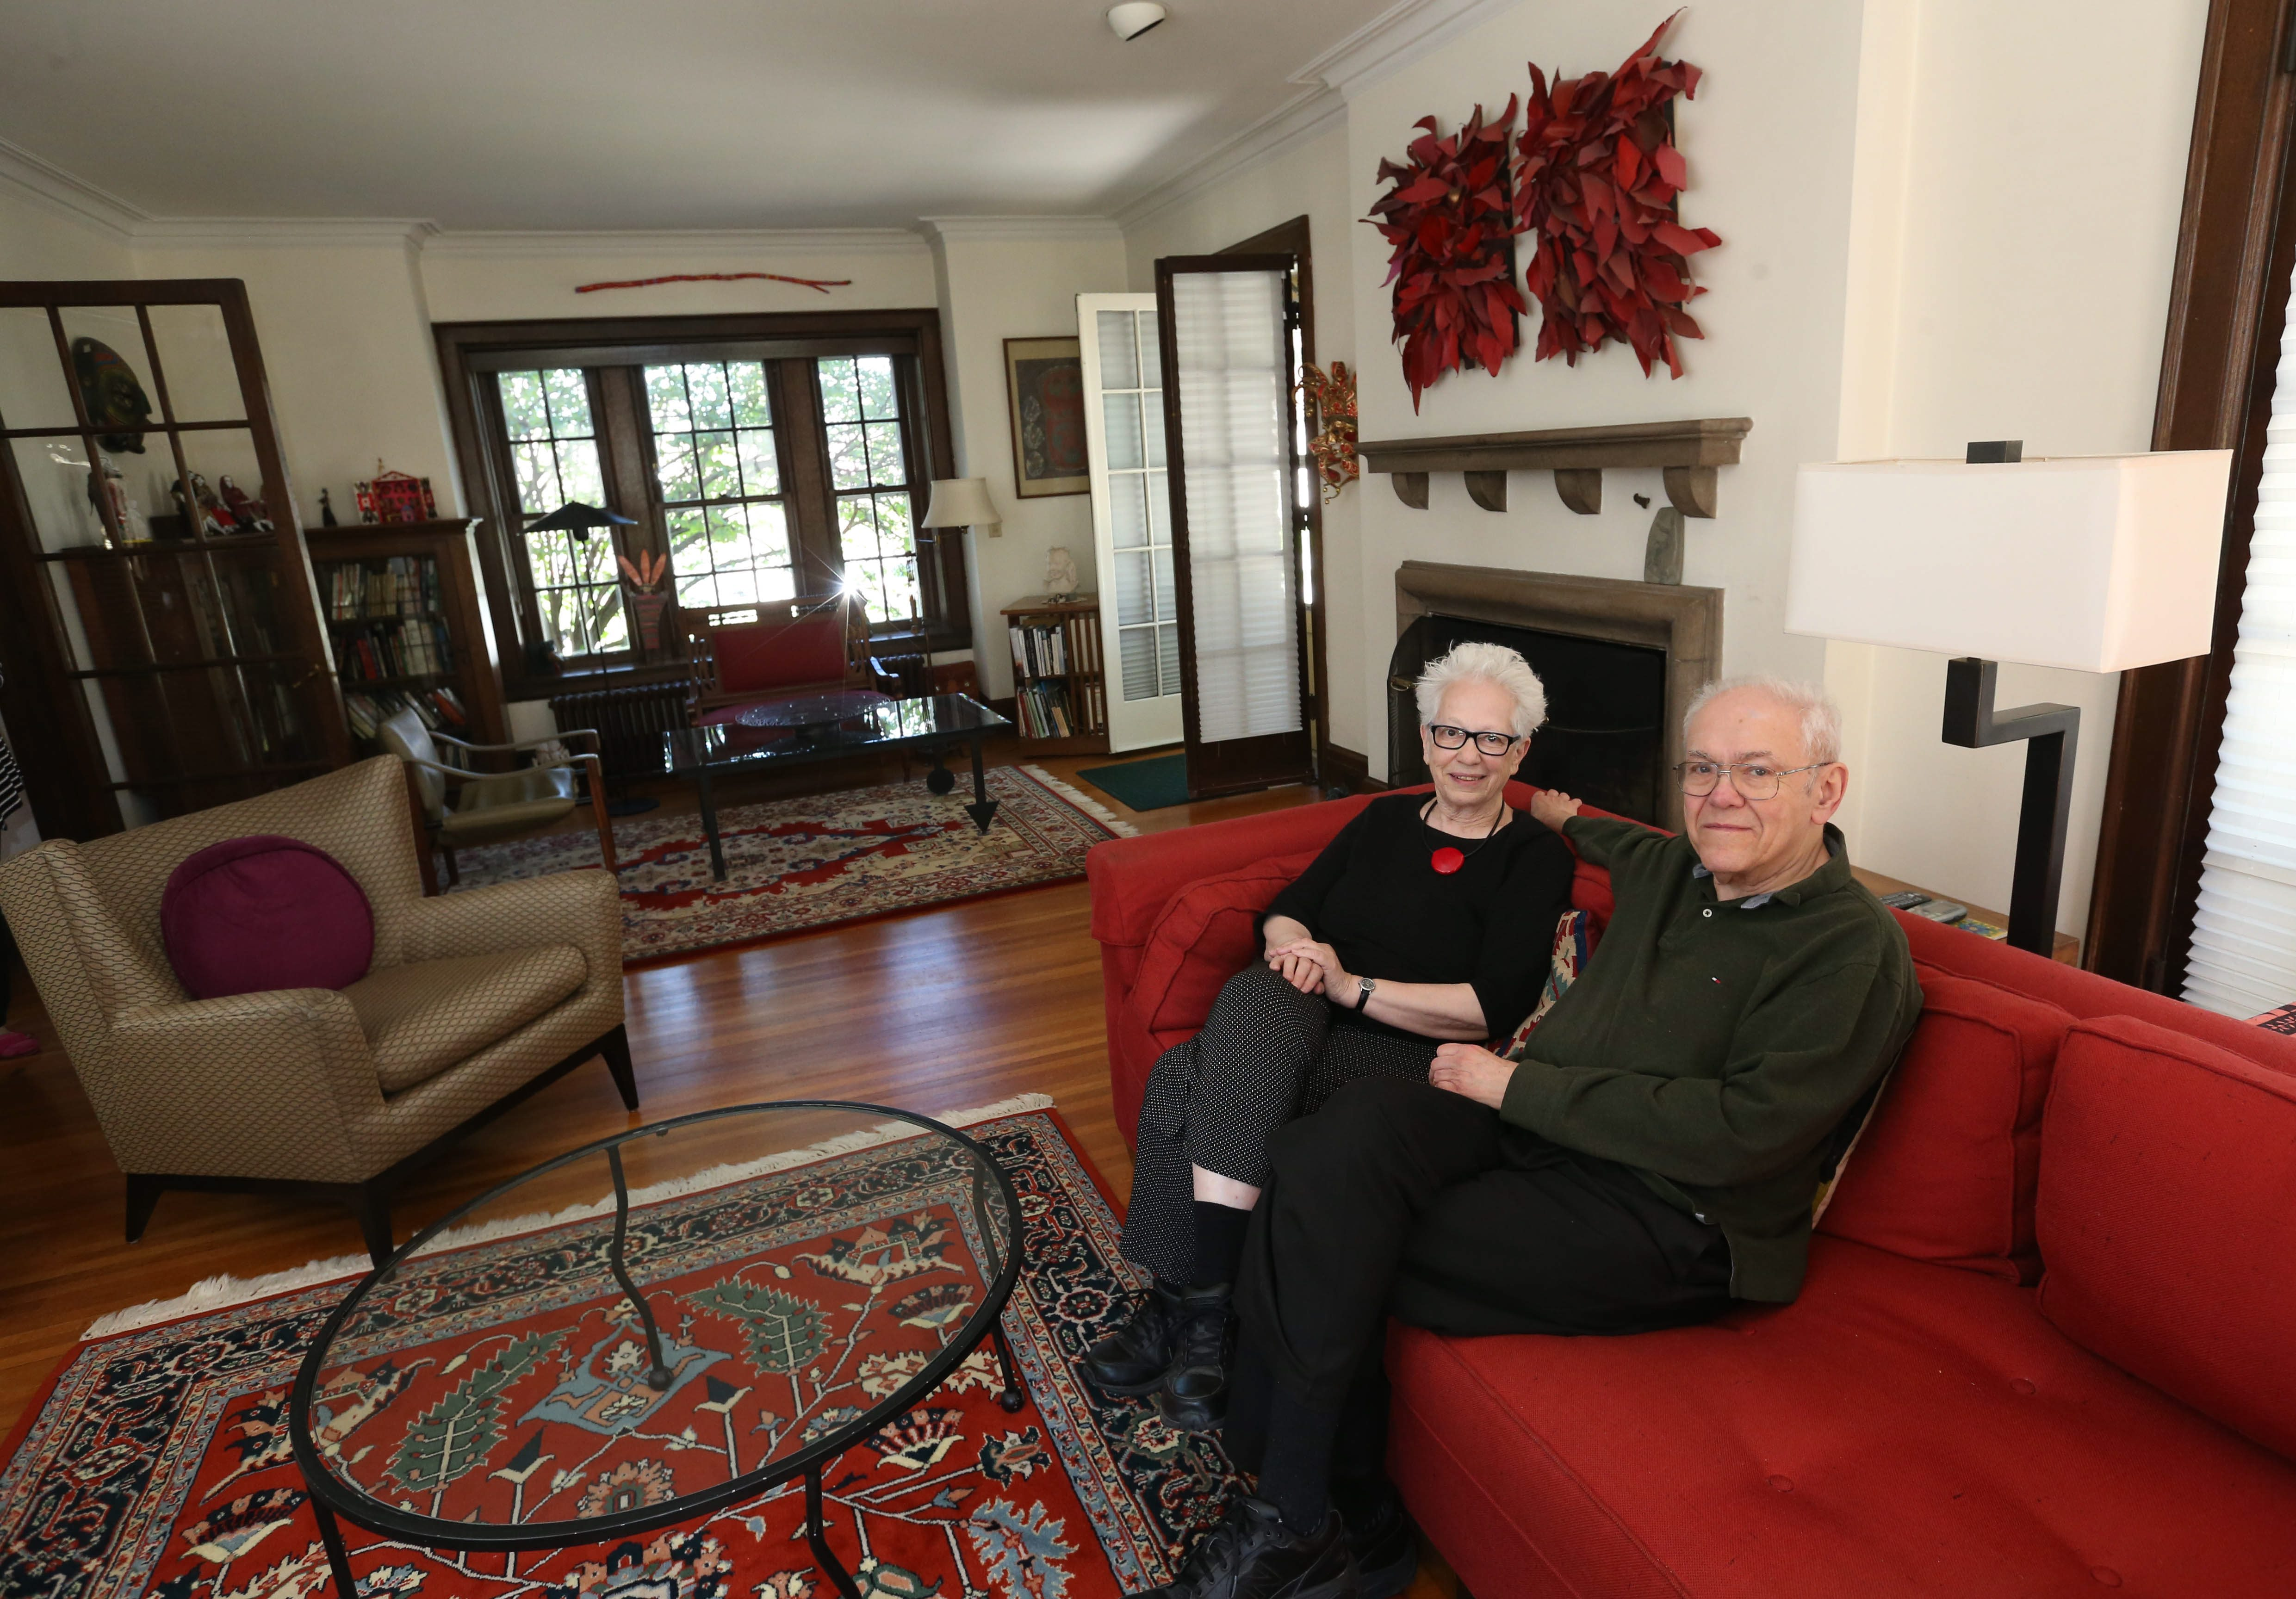 Judy and Alan Duchan will open their Colonial Revival-style home during the Parkside Tour of Homes May 22. (Sharon Cantillon/Buffalo News)